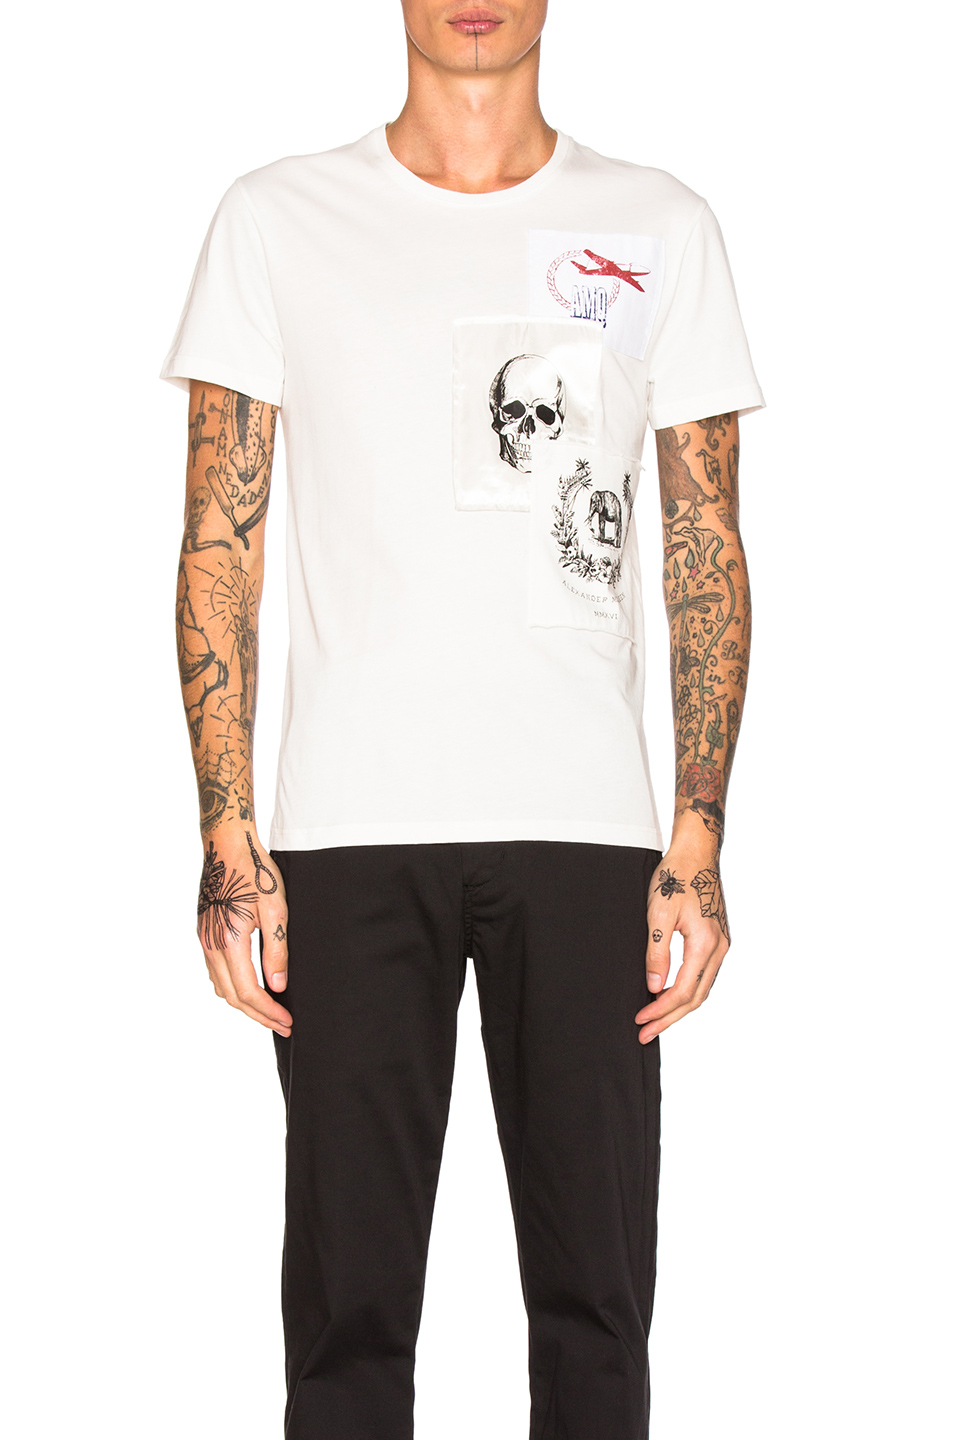 Alexander McQueen Printed Tee in White